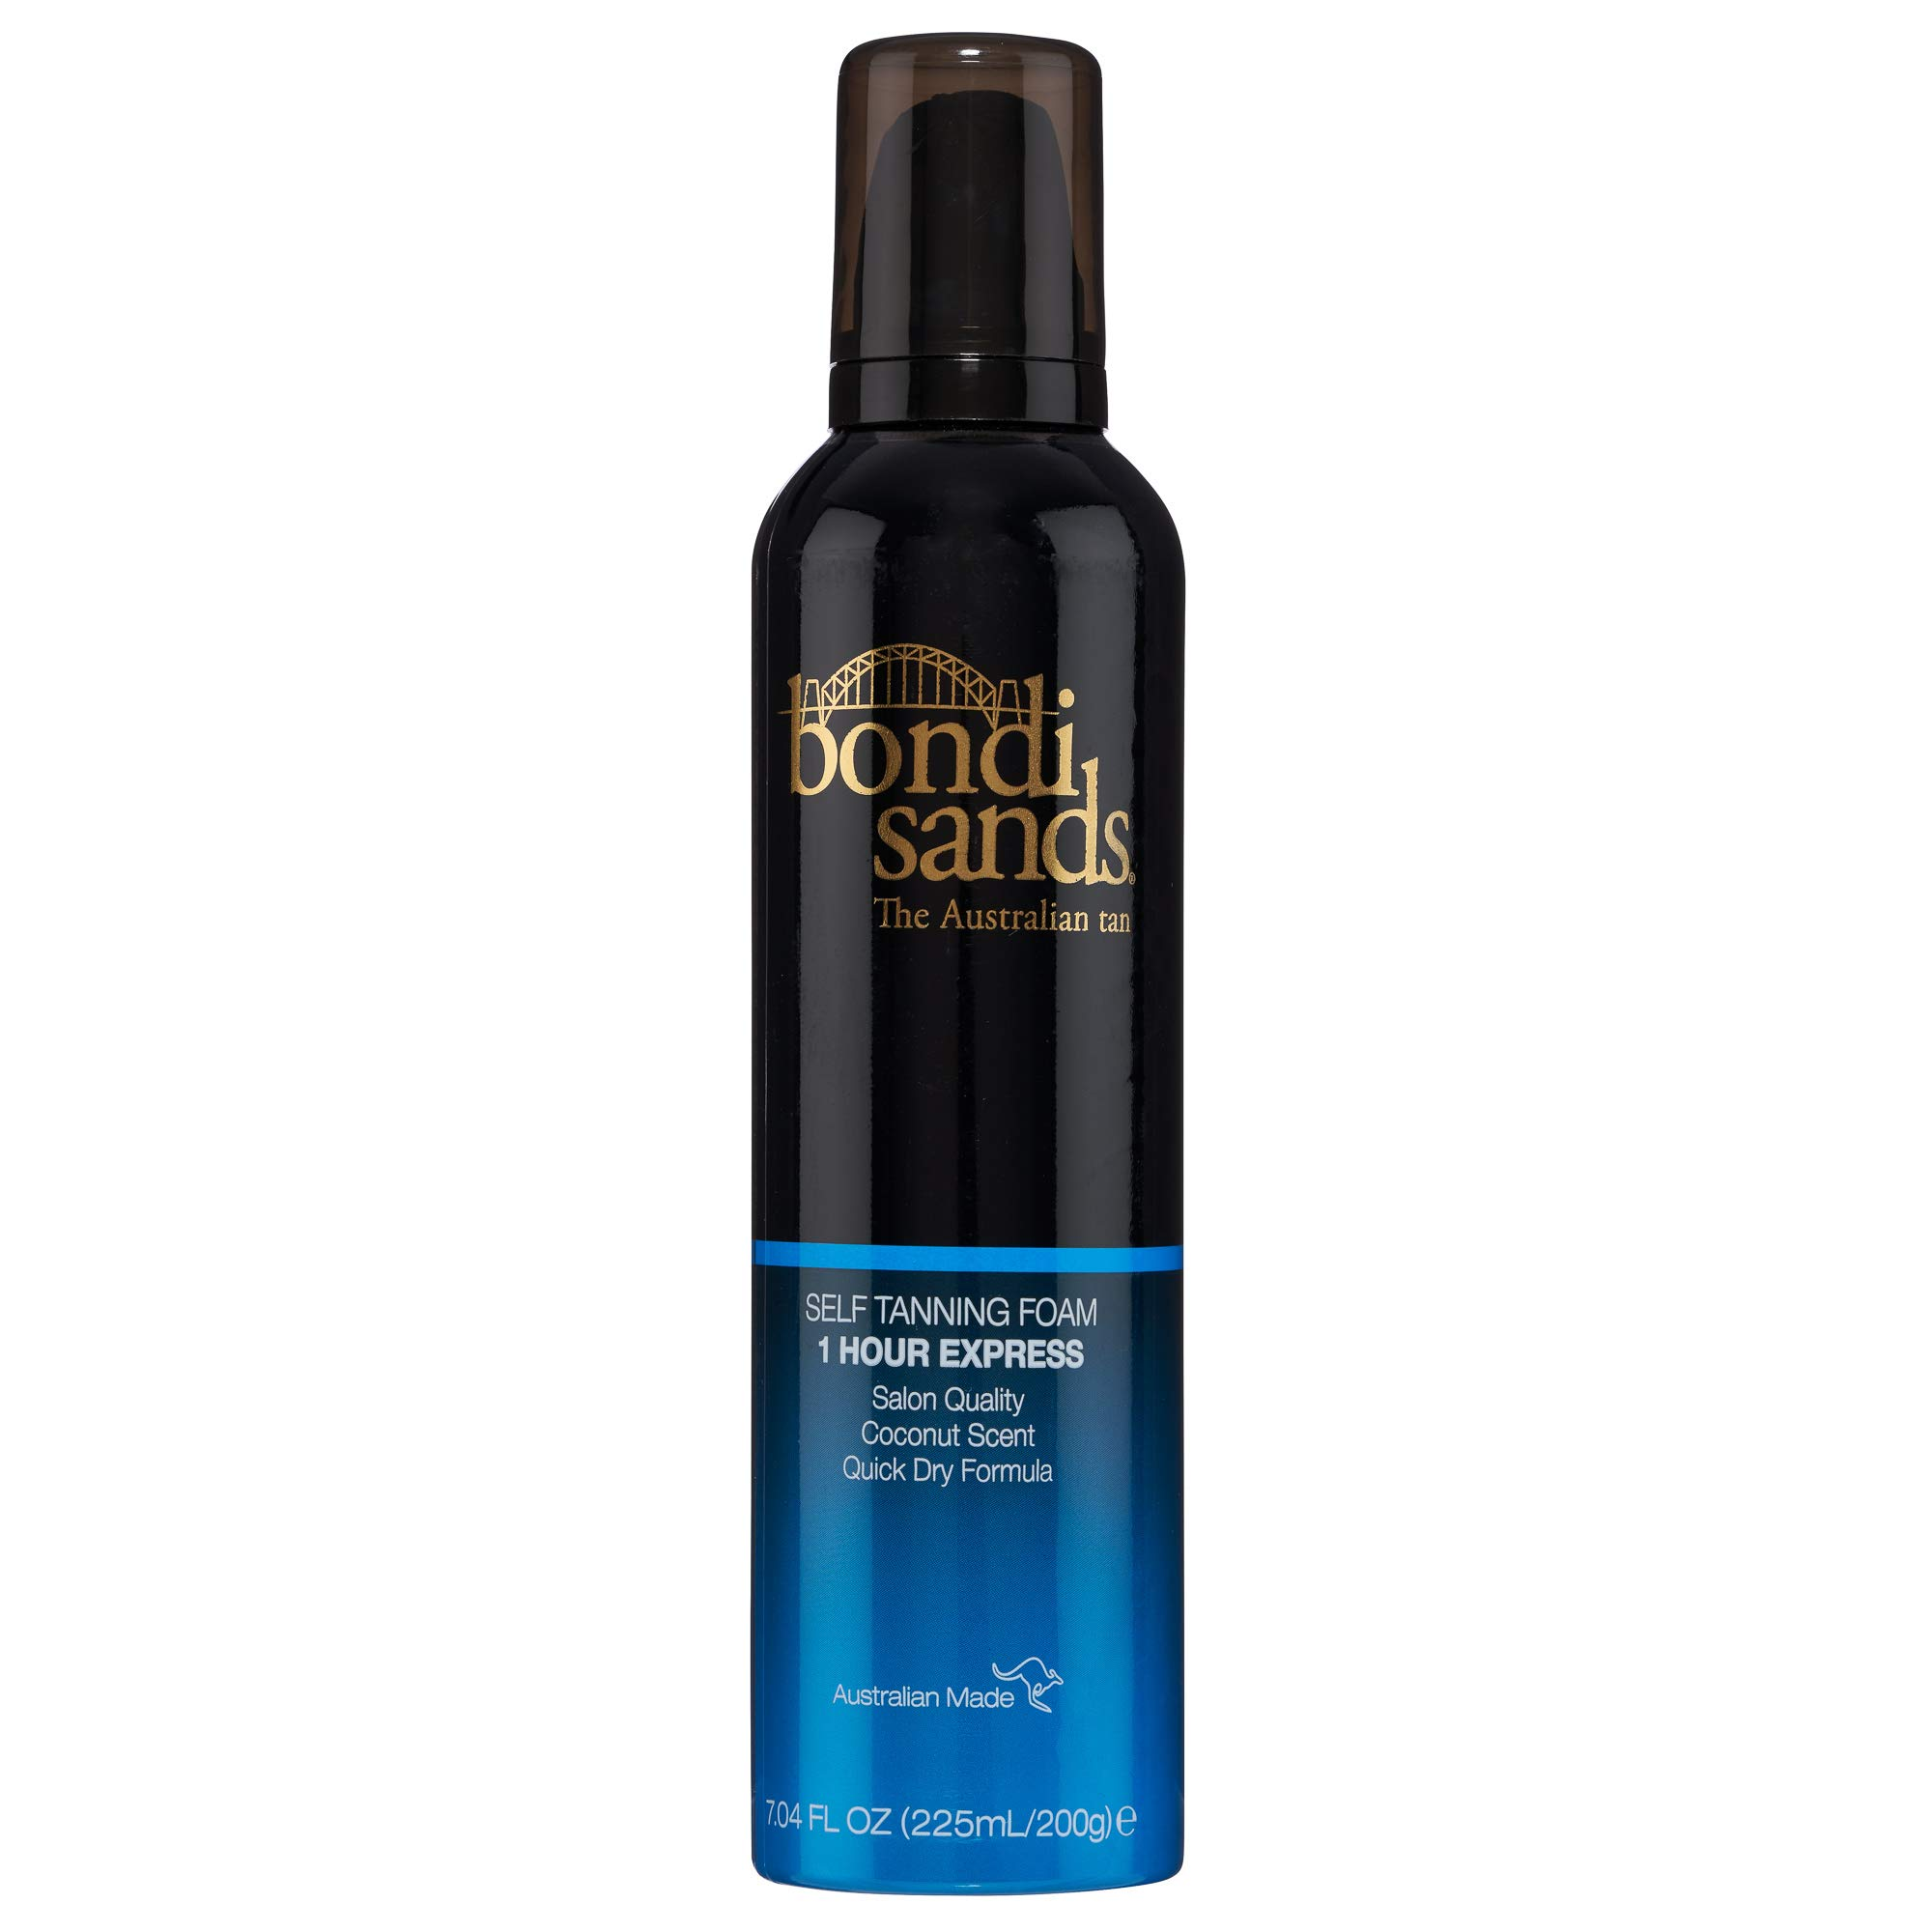 Bondi Sands Self Tanner Foam - 1 Hour Express - Self Tanner Mousse for Quick Sunless Tanning - Use for a Natural Looking Australian Golden Tan (7.04 FL OZ)